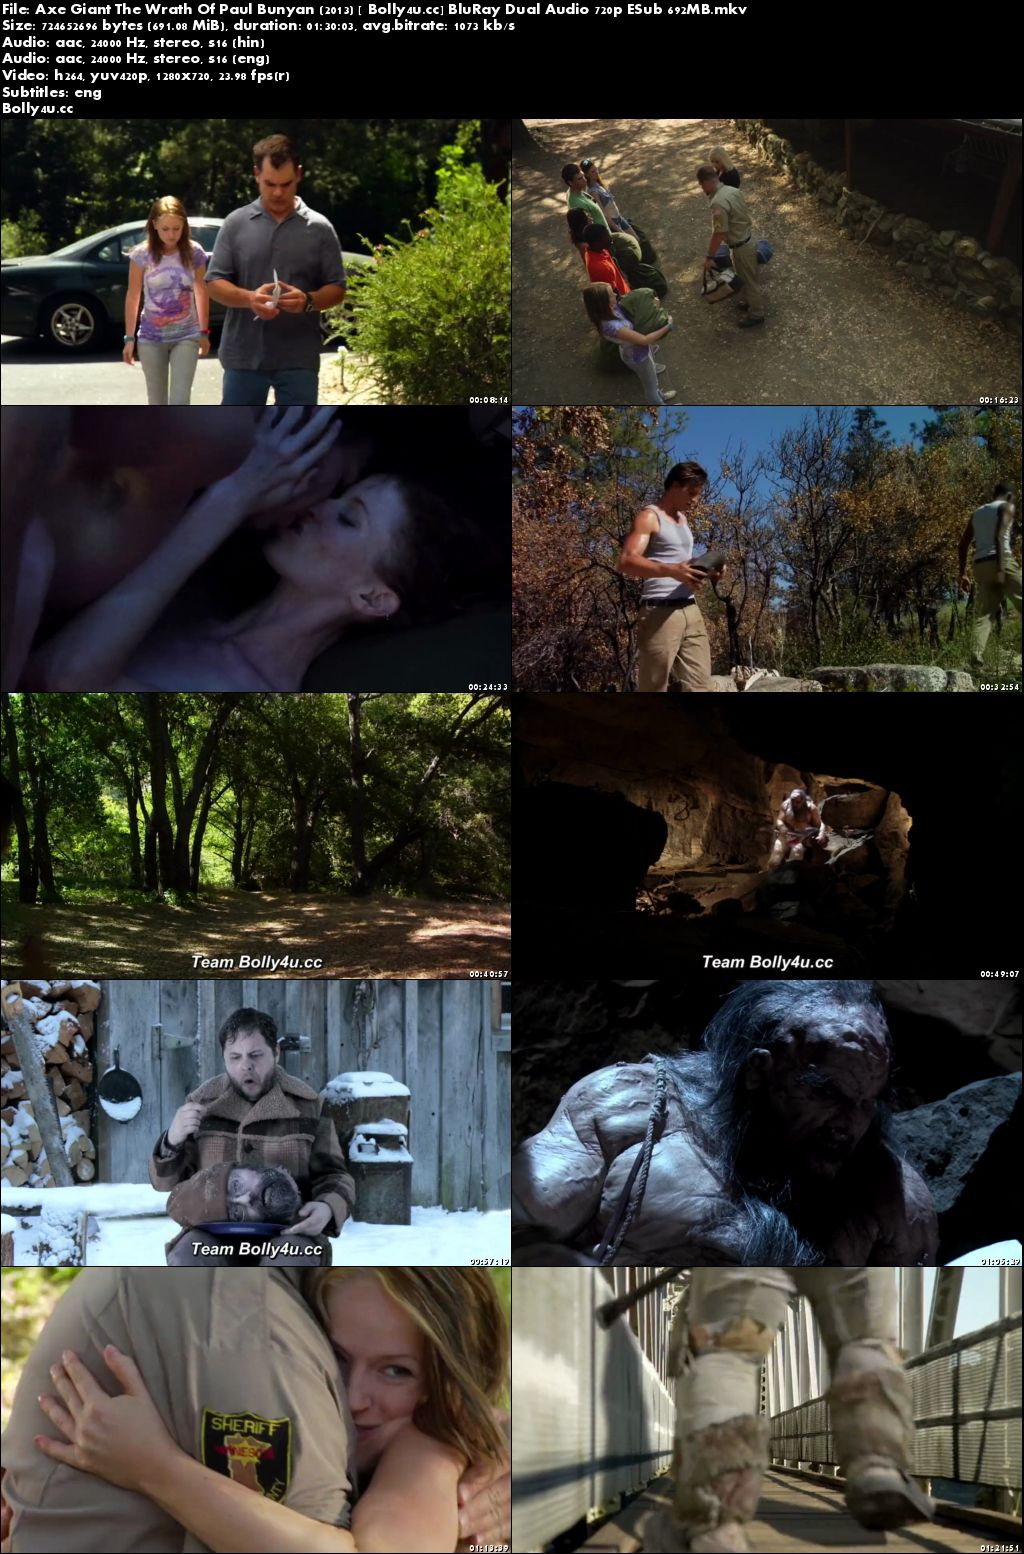 Axe Giant The Wrath Of Paul Bunyan 2013 BRRip 700MB Hindi Dual Audio 720p Download